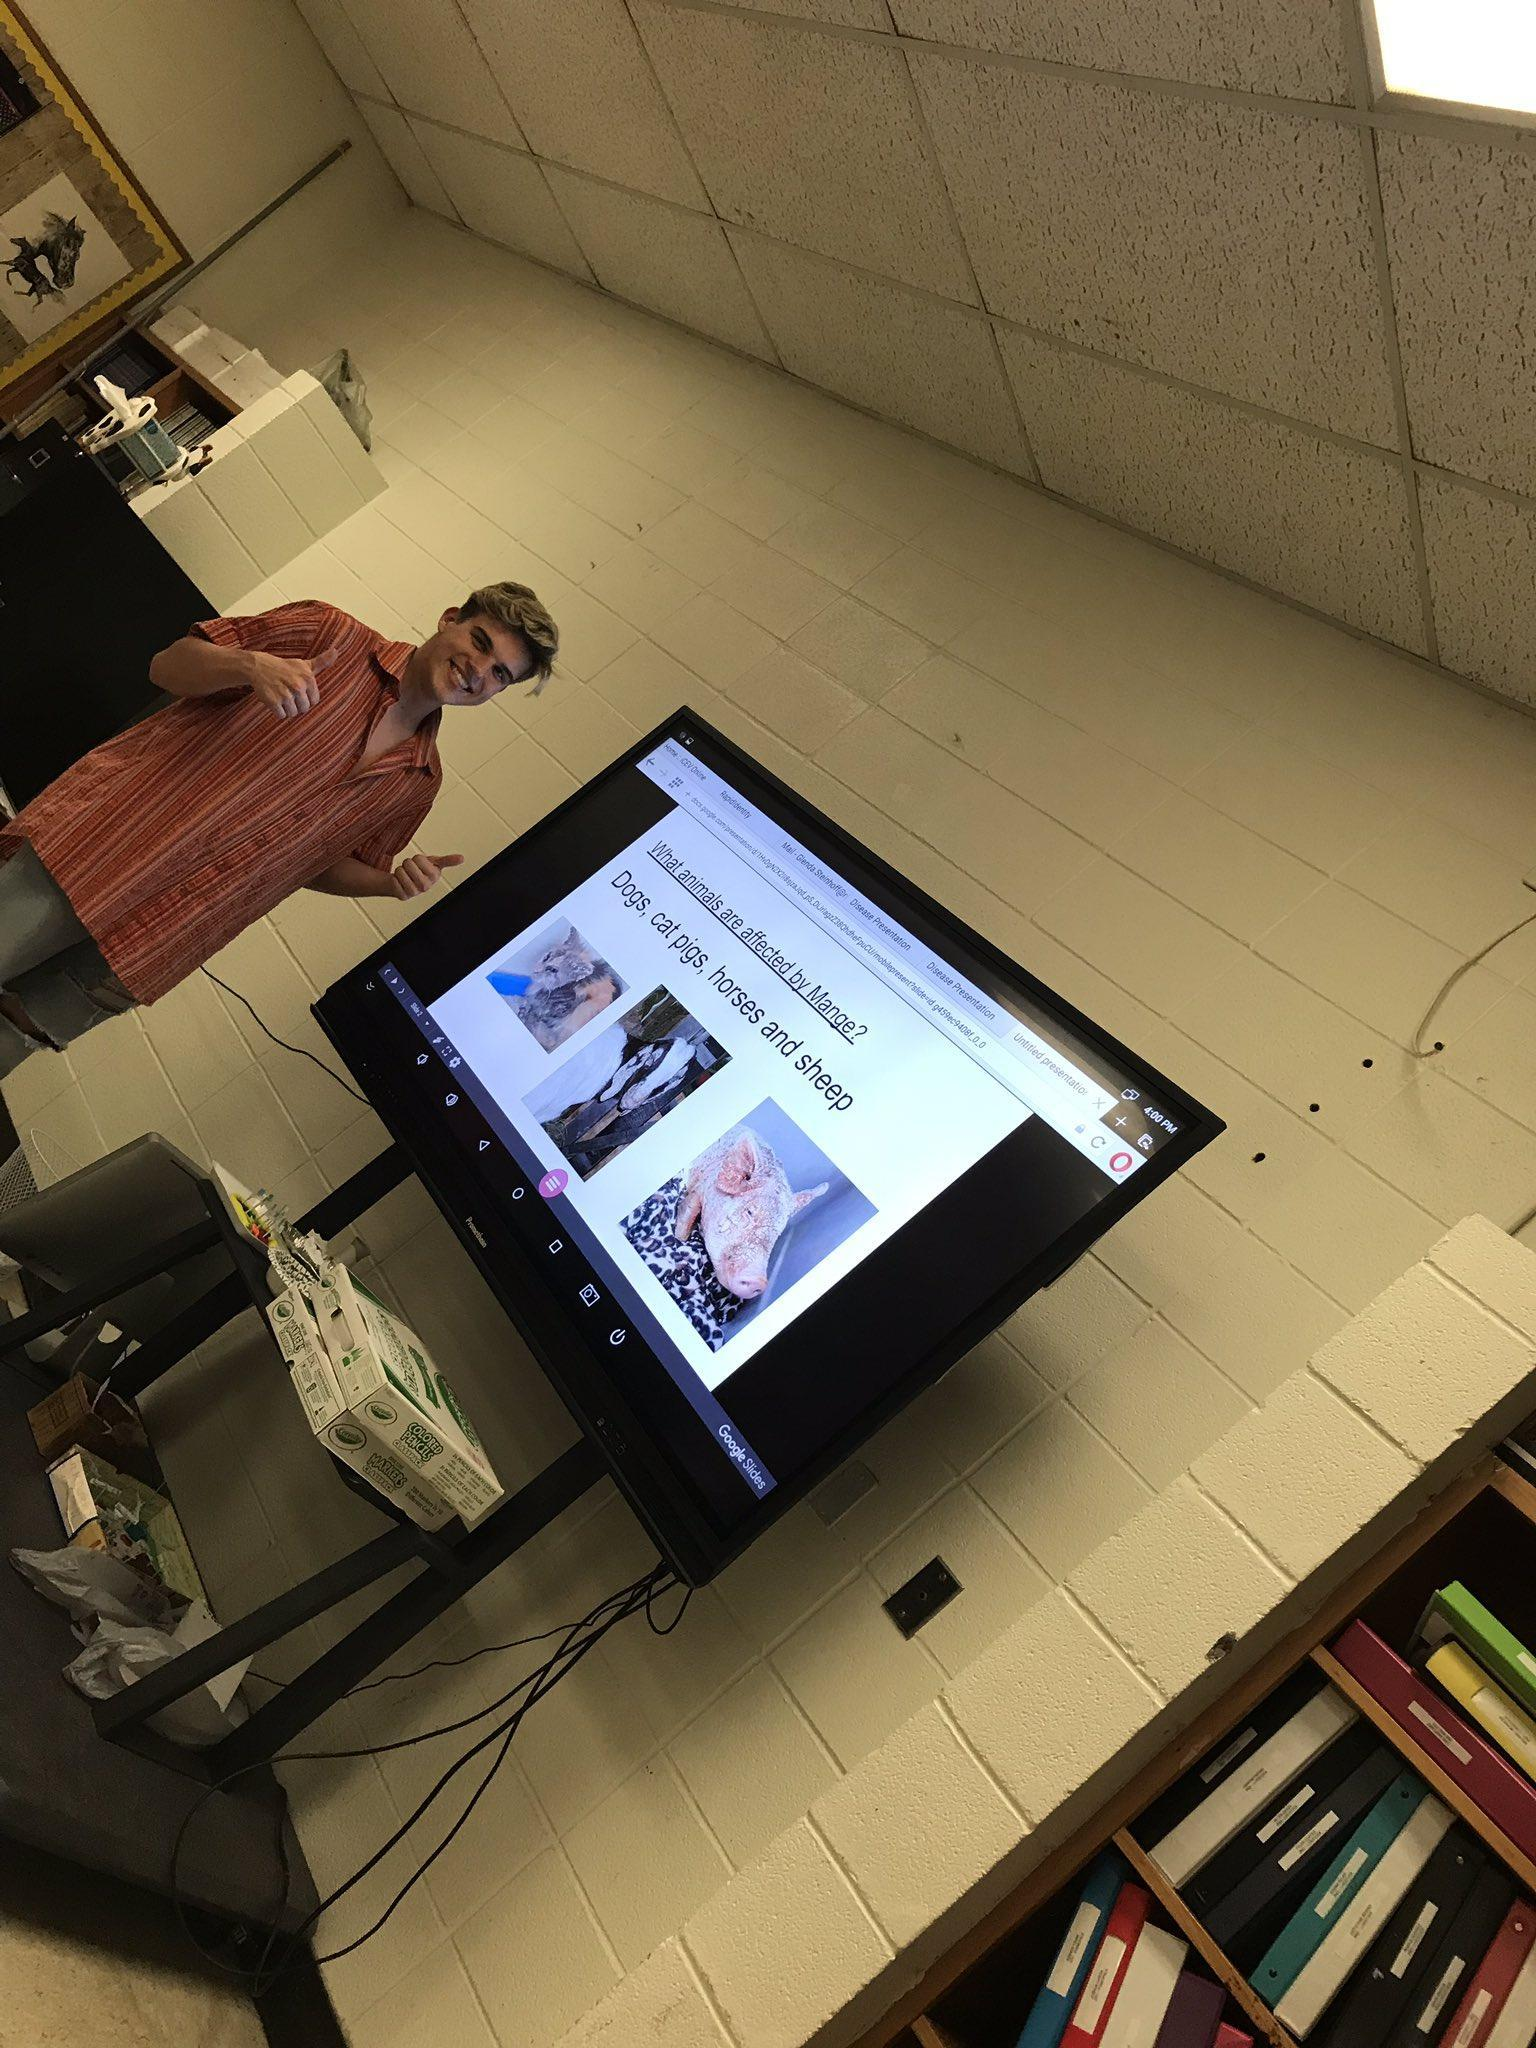 student in front of tv screen presenting on Mange